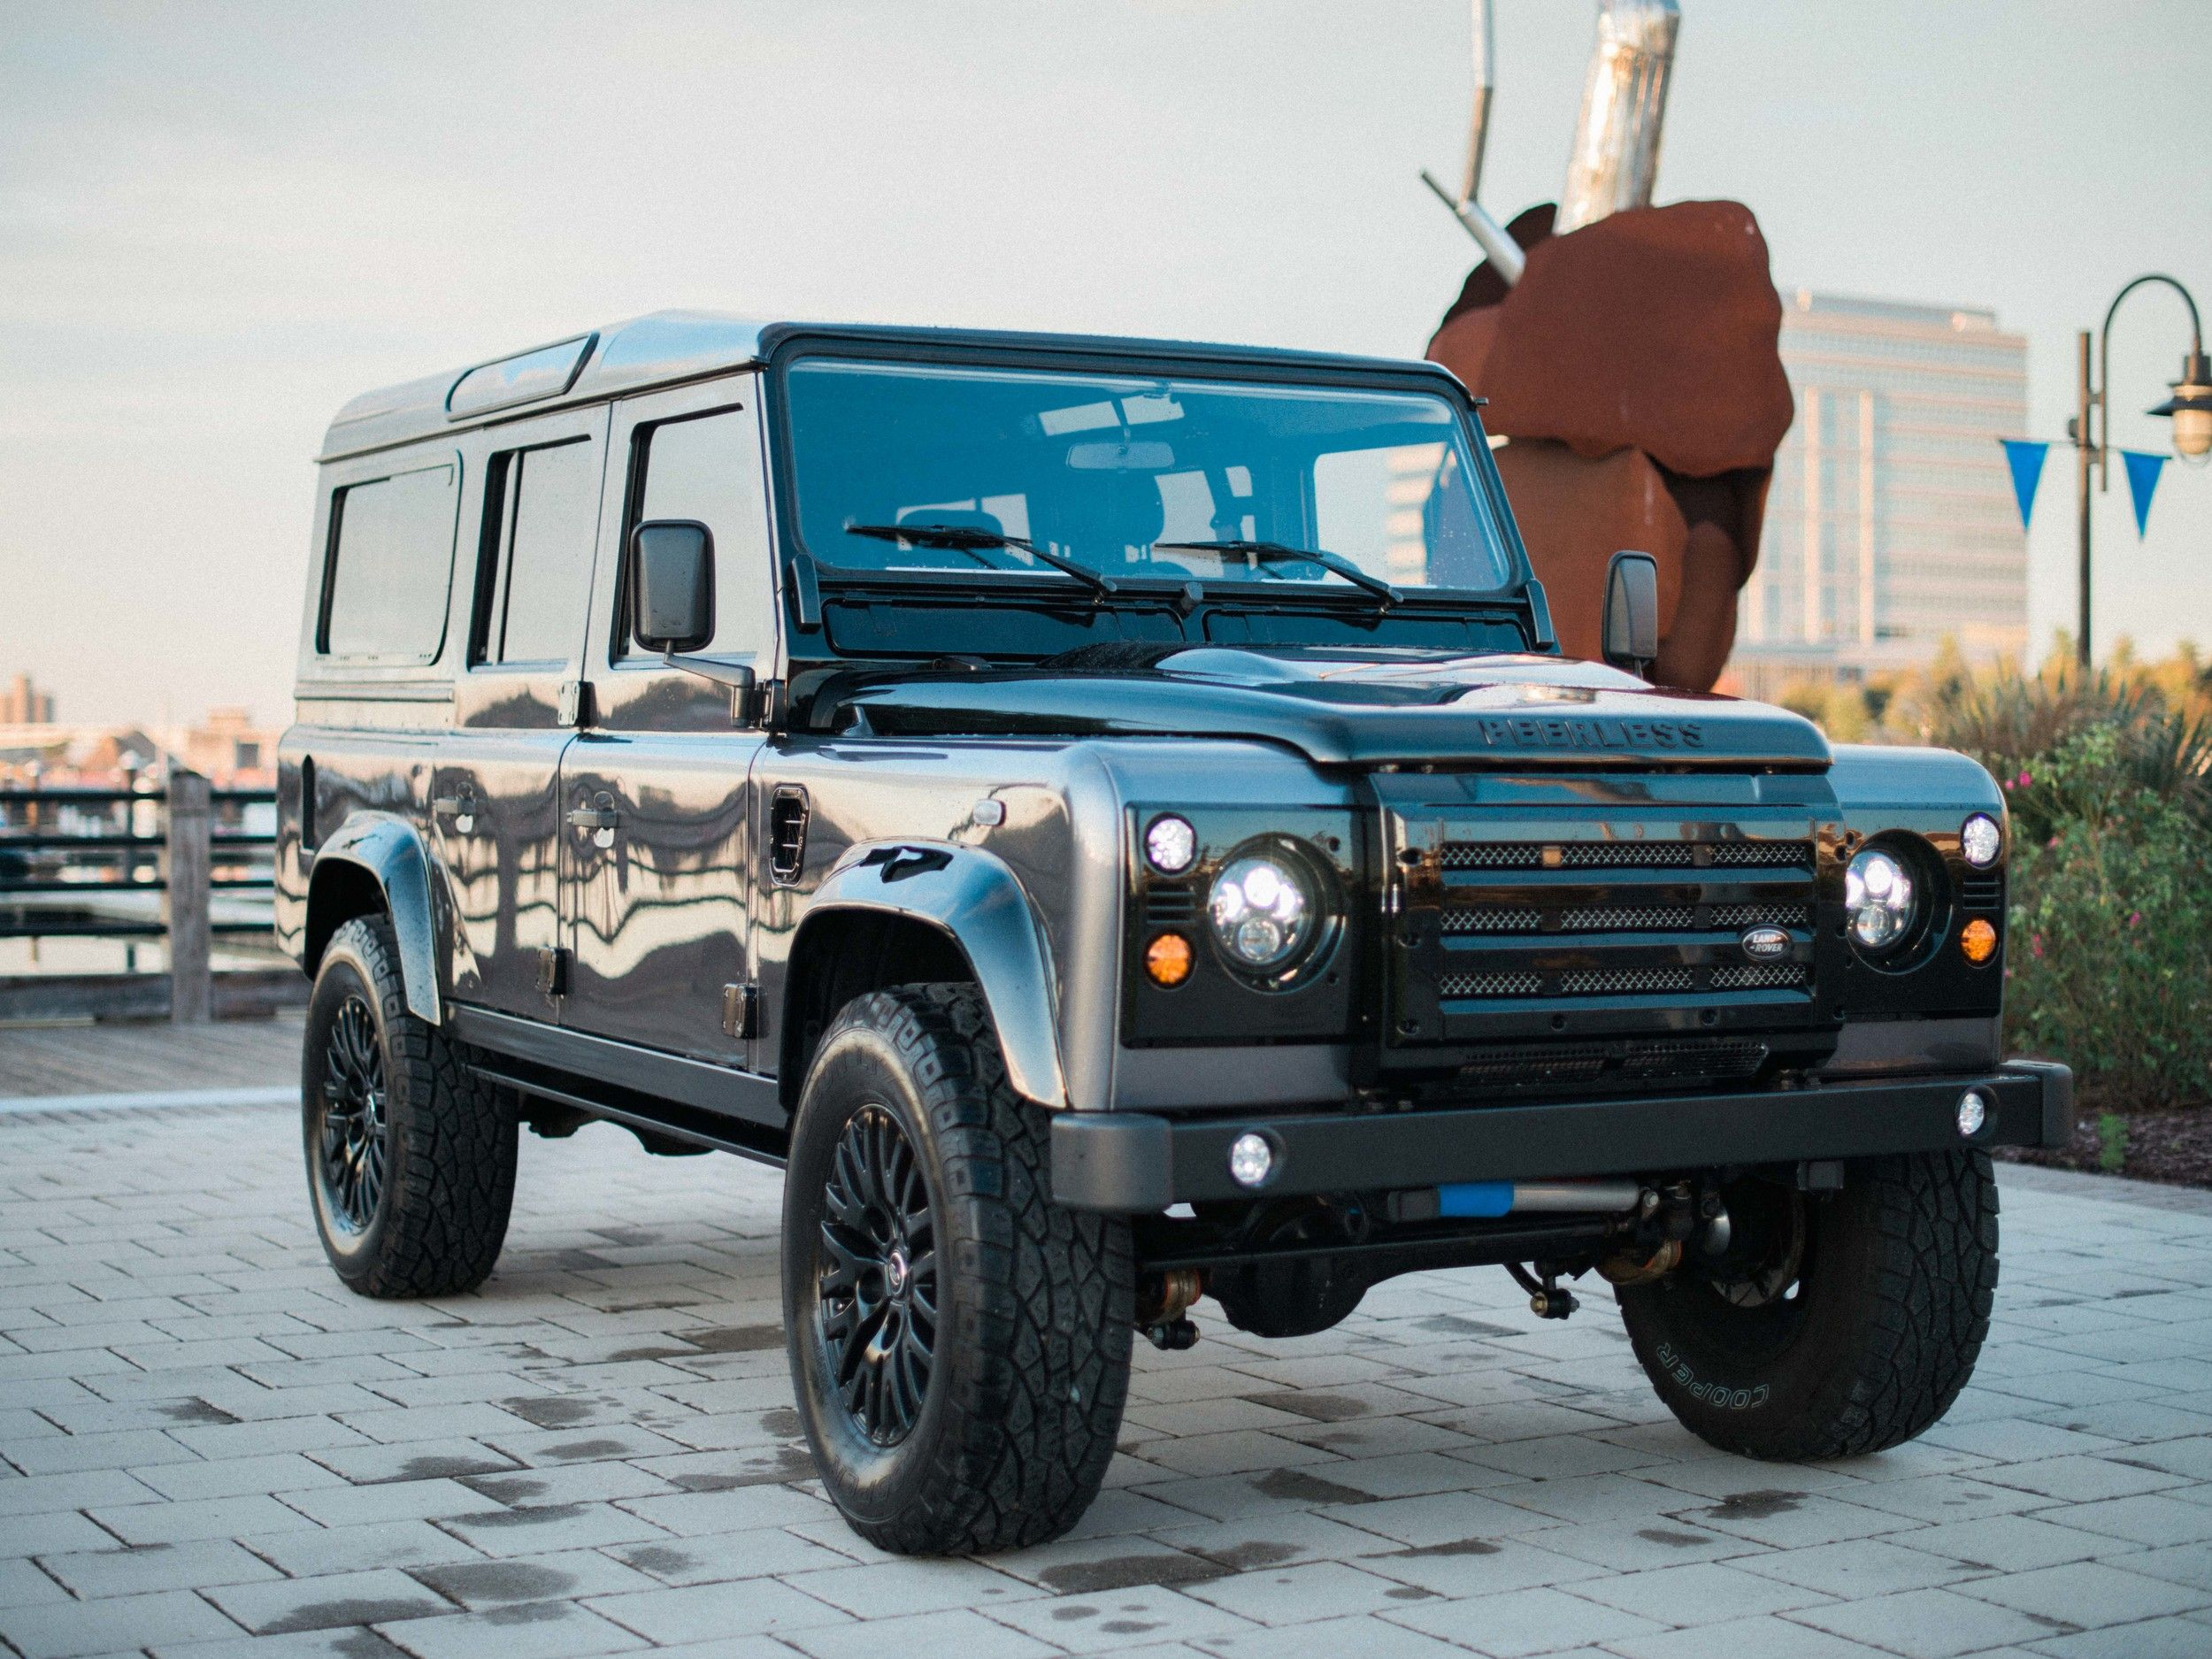 land landrover rovers landroverforsale sale defender rover used for